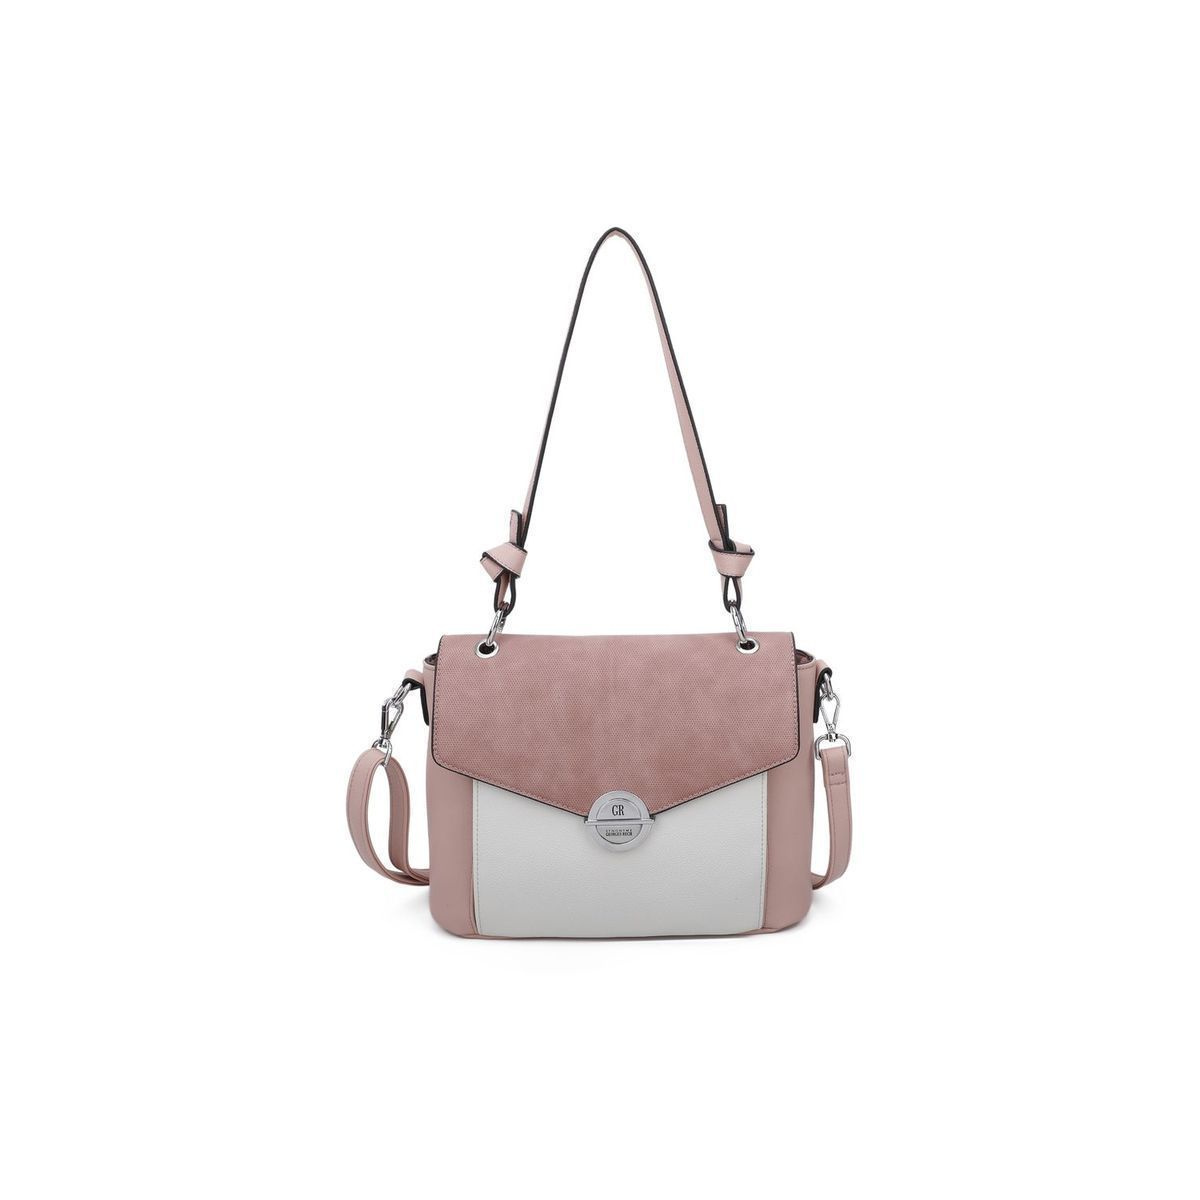 SINCLAIR HEIDI:ROSE/SIMILI CUIR/POLYESTER//Rose